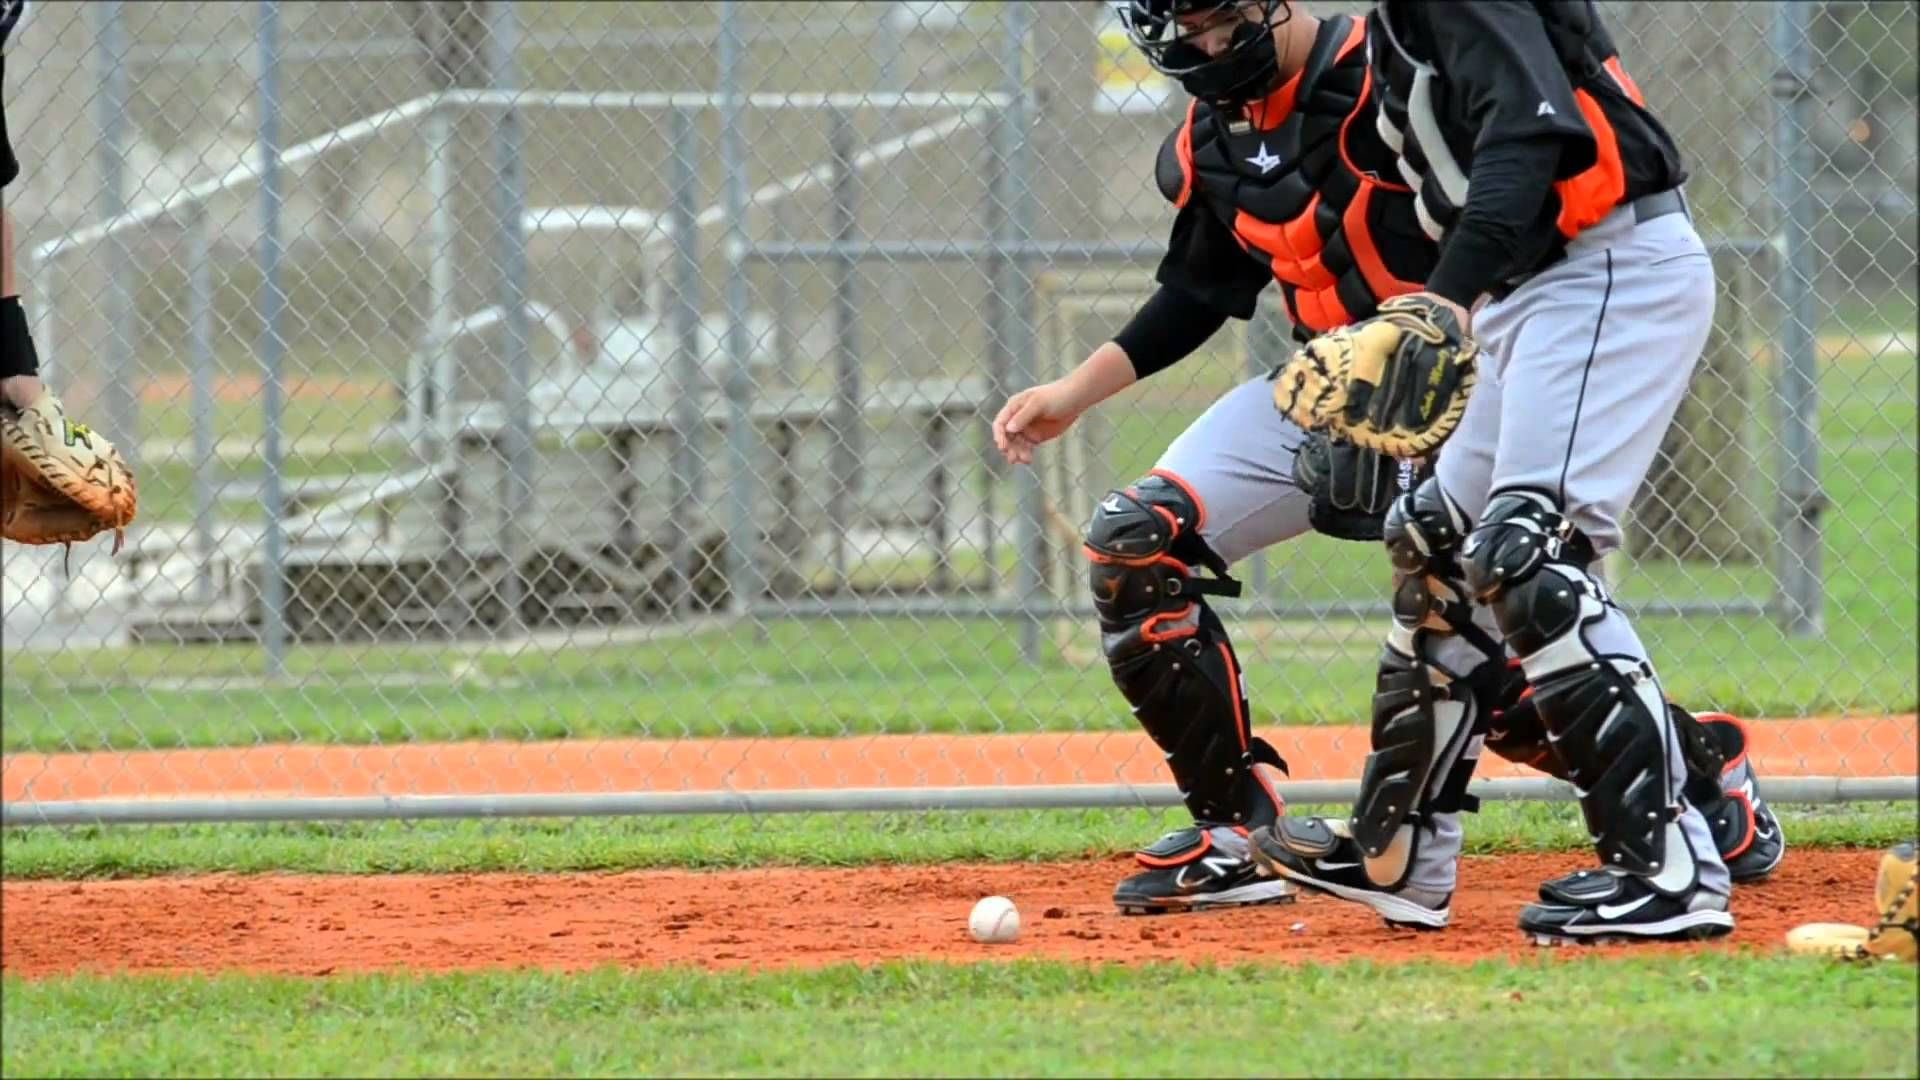 Mlb Catchers Drills What I Really Like Is The Catcher S Stance Here Baseball Catcher Baseball Drills Baseball Workouts